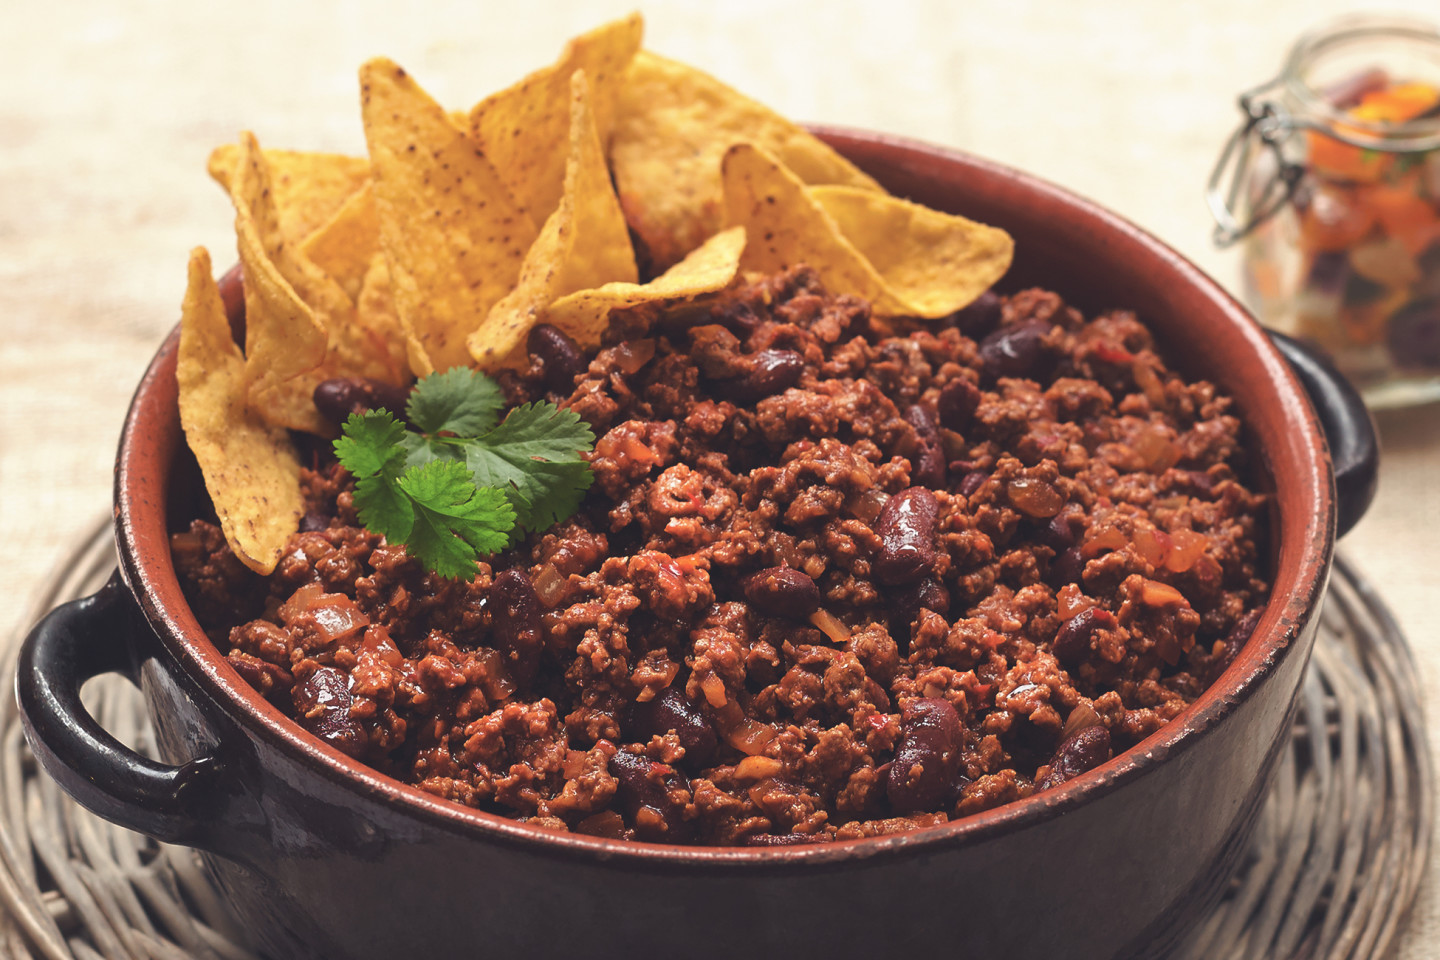 Slow cook a healthier chilli